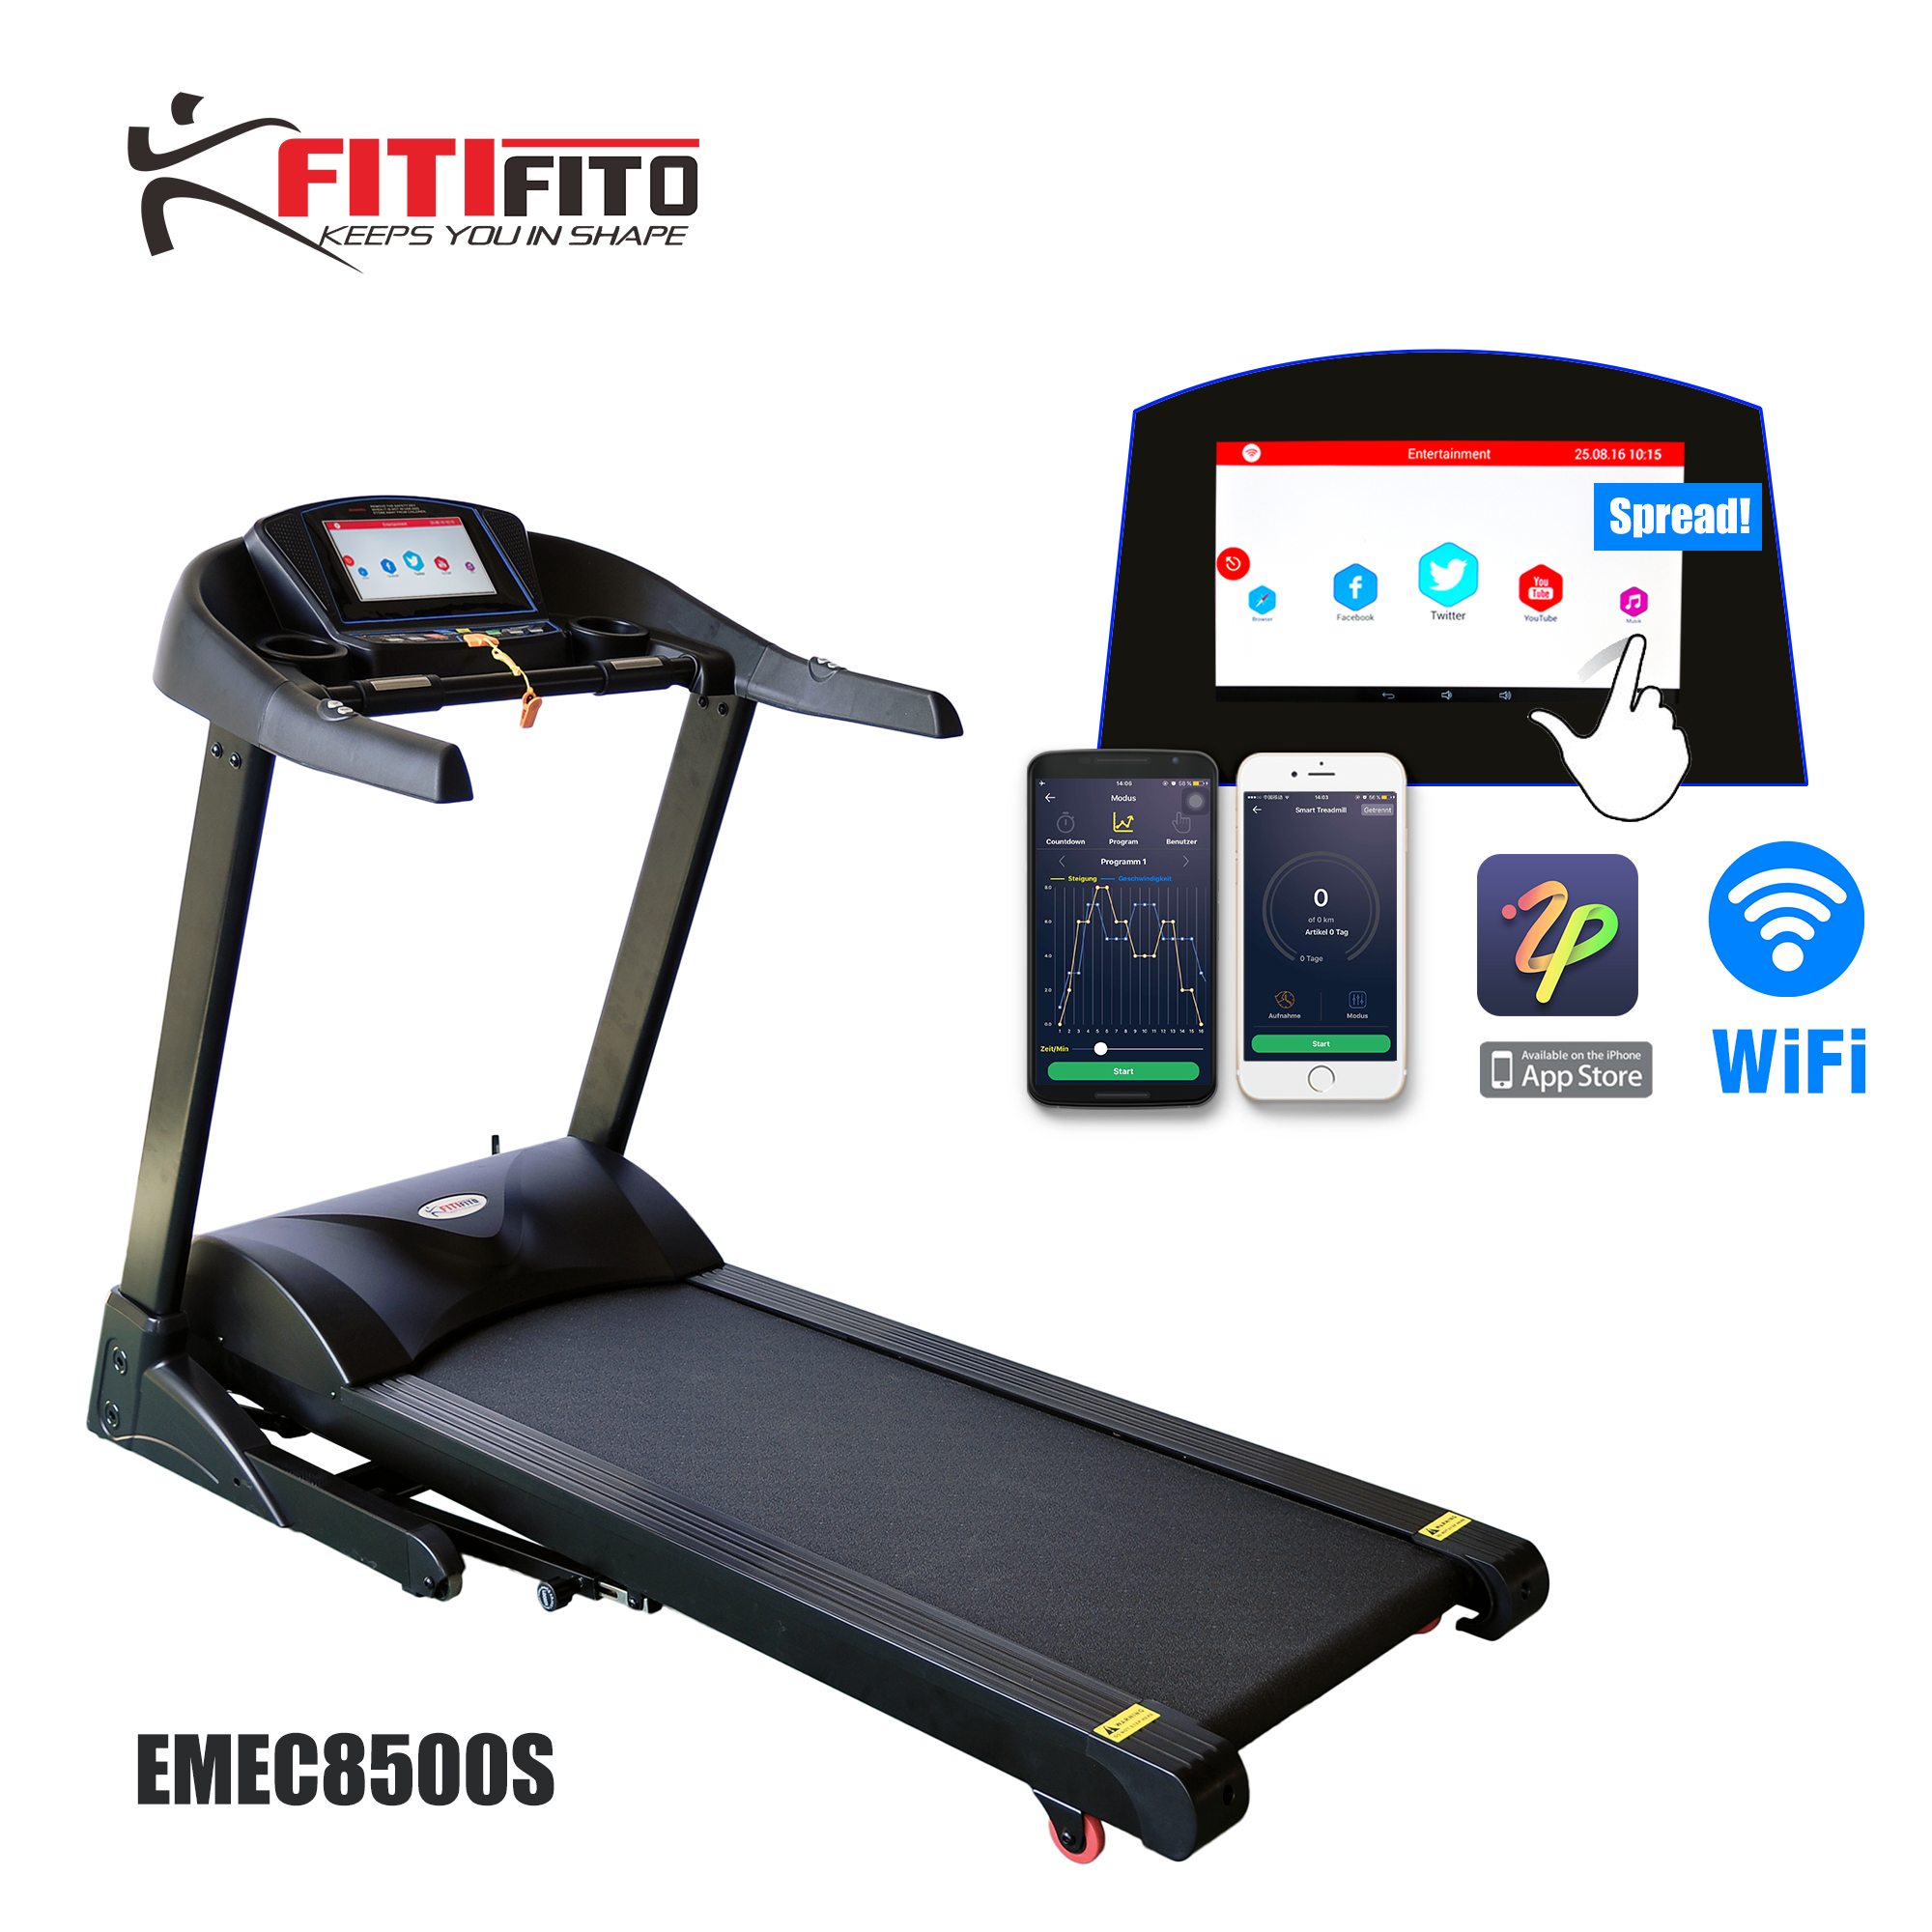 laufband fitifito 8500s profi mit wifi touchscreen app 22 trainingsmodule 7 5ps ebay. Black Bedroom Furniture Sets. Home Design Ideas